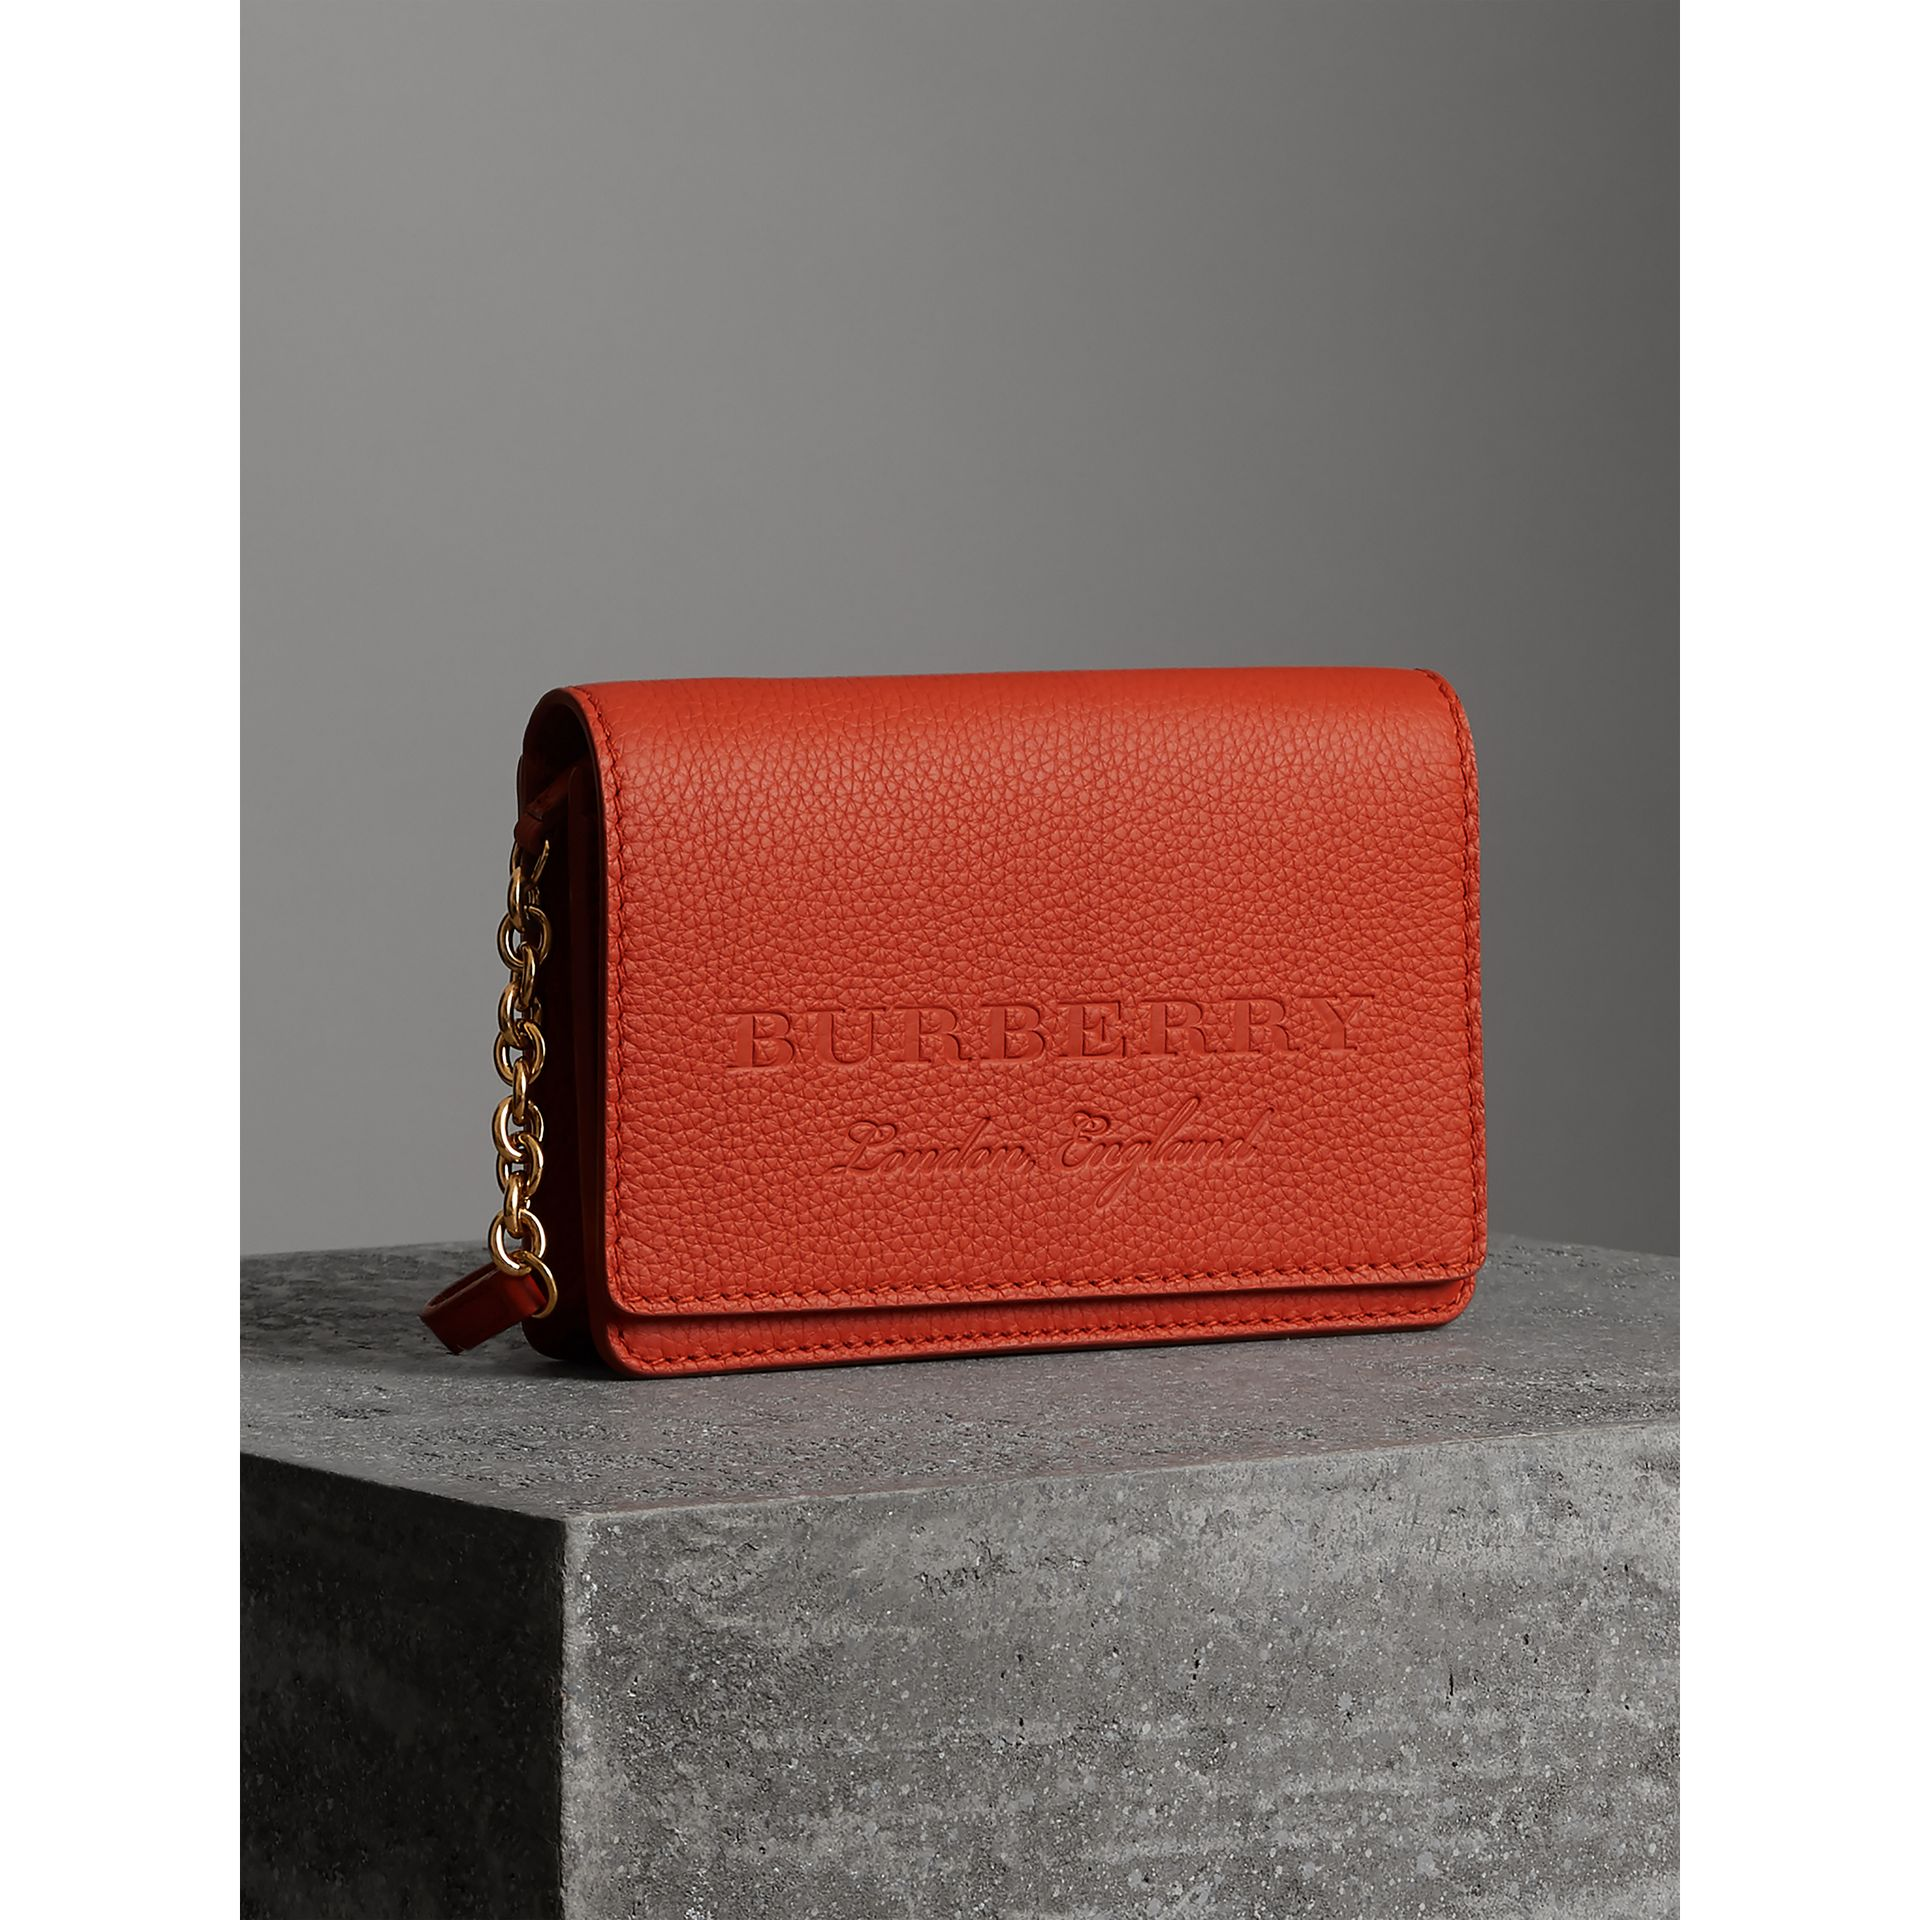 Embossed Leather Wallet with Detachable Strap in Dark Clementine - Women | Burberry Hong Kong - gallery image 4